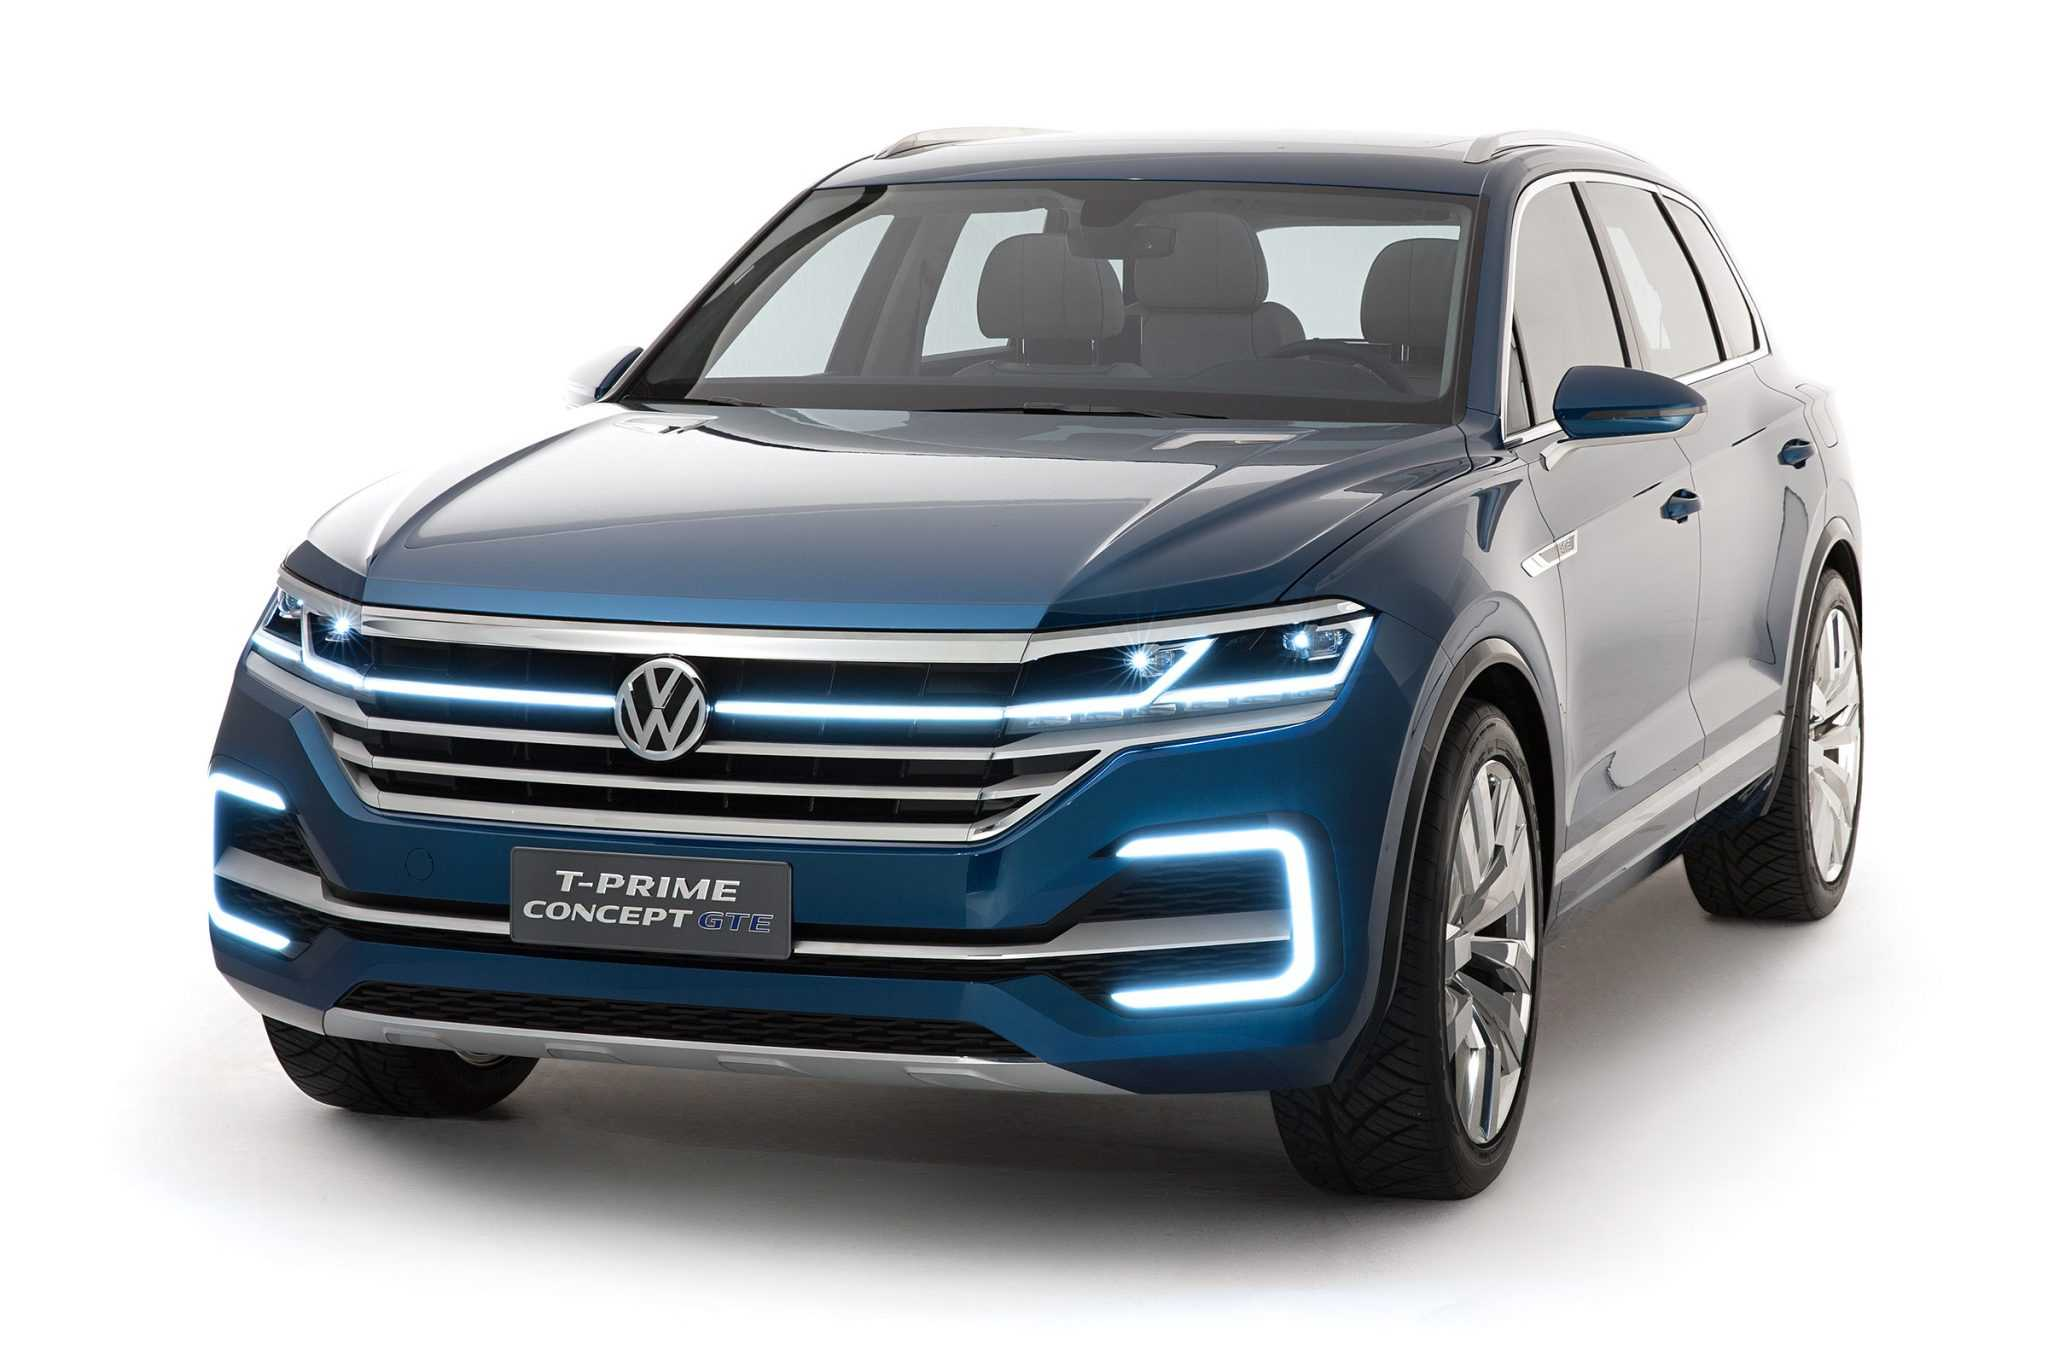 2017 Volkswagen Touareg Gets Refreshed With T-Prime Concept